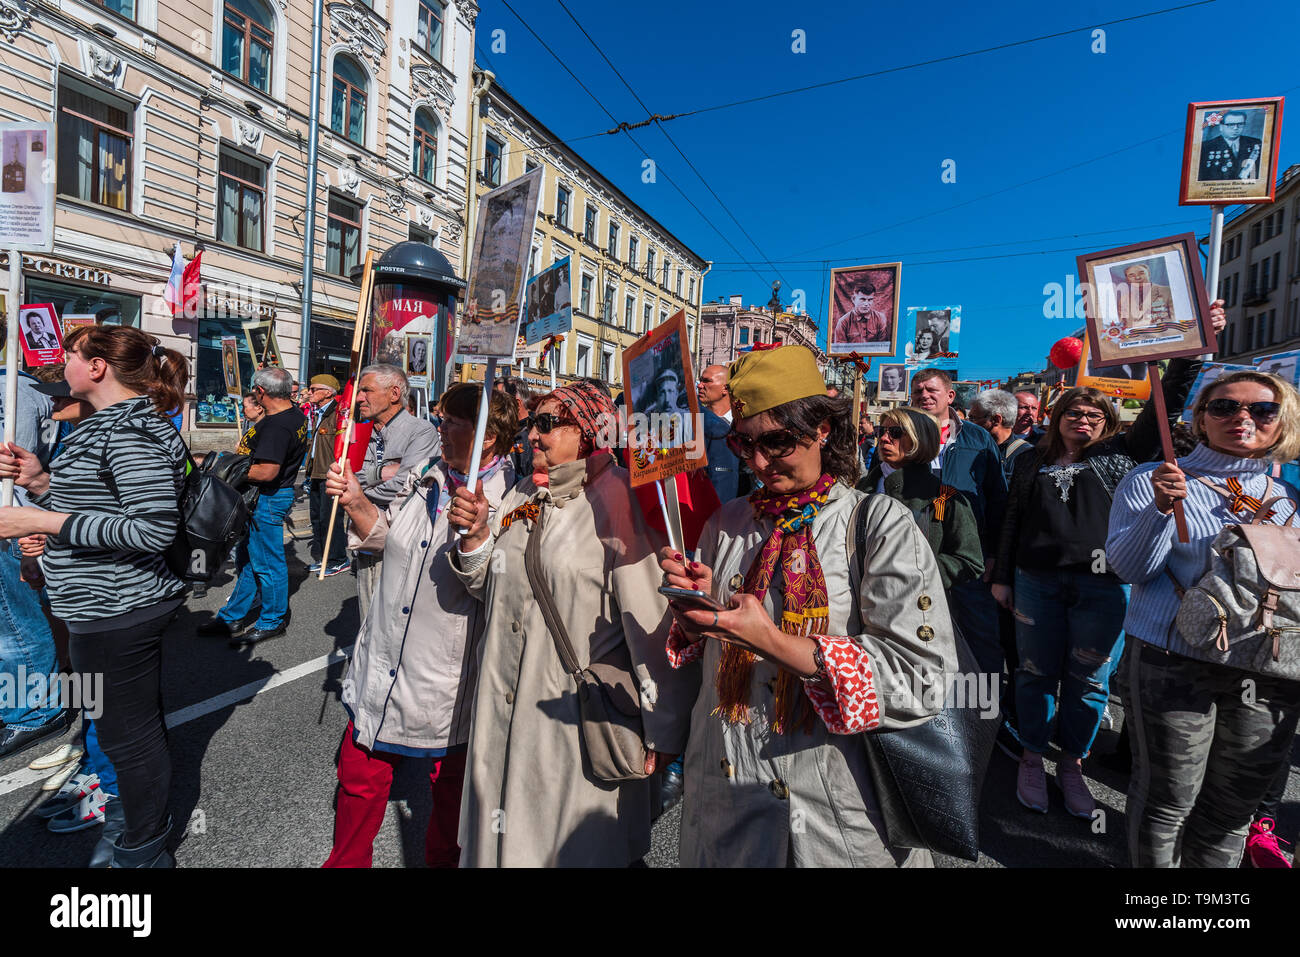 Immortal regiment - people carry banners with a photograph of their warrior ancestors, Victory Day, Nevsky Prospect, St. Petersburg, Russia - Stock Image